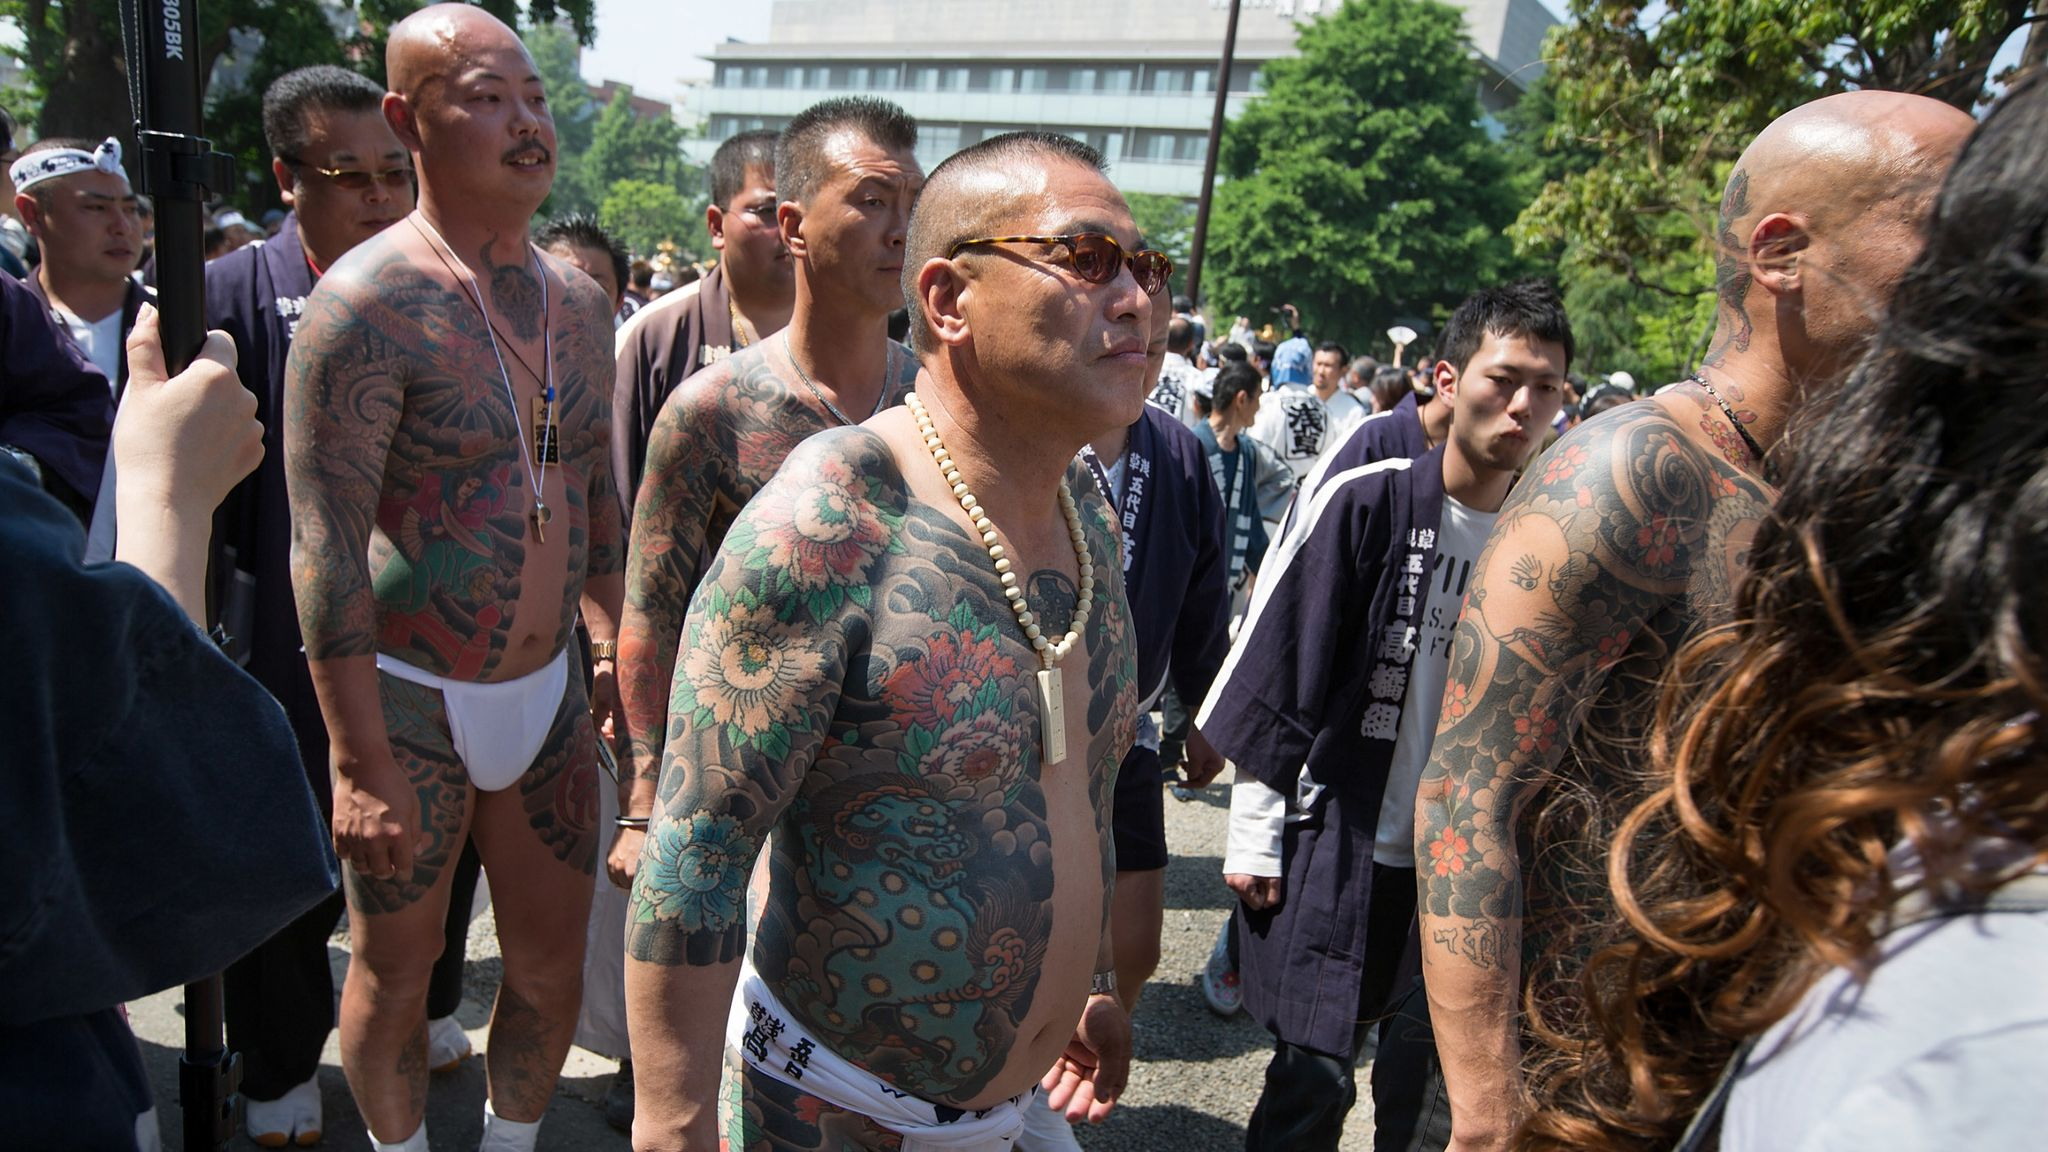 Members of the Takahashi-gumi gang are seen at a festival in the Asakusa district in Japan